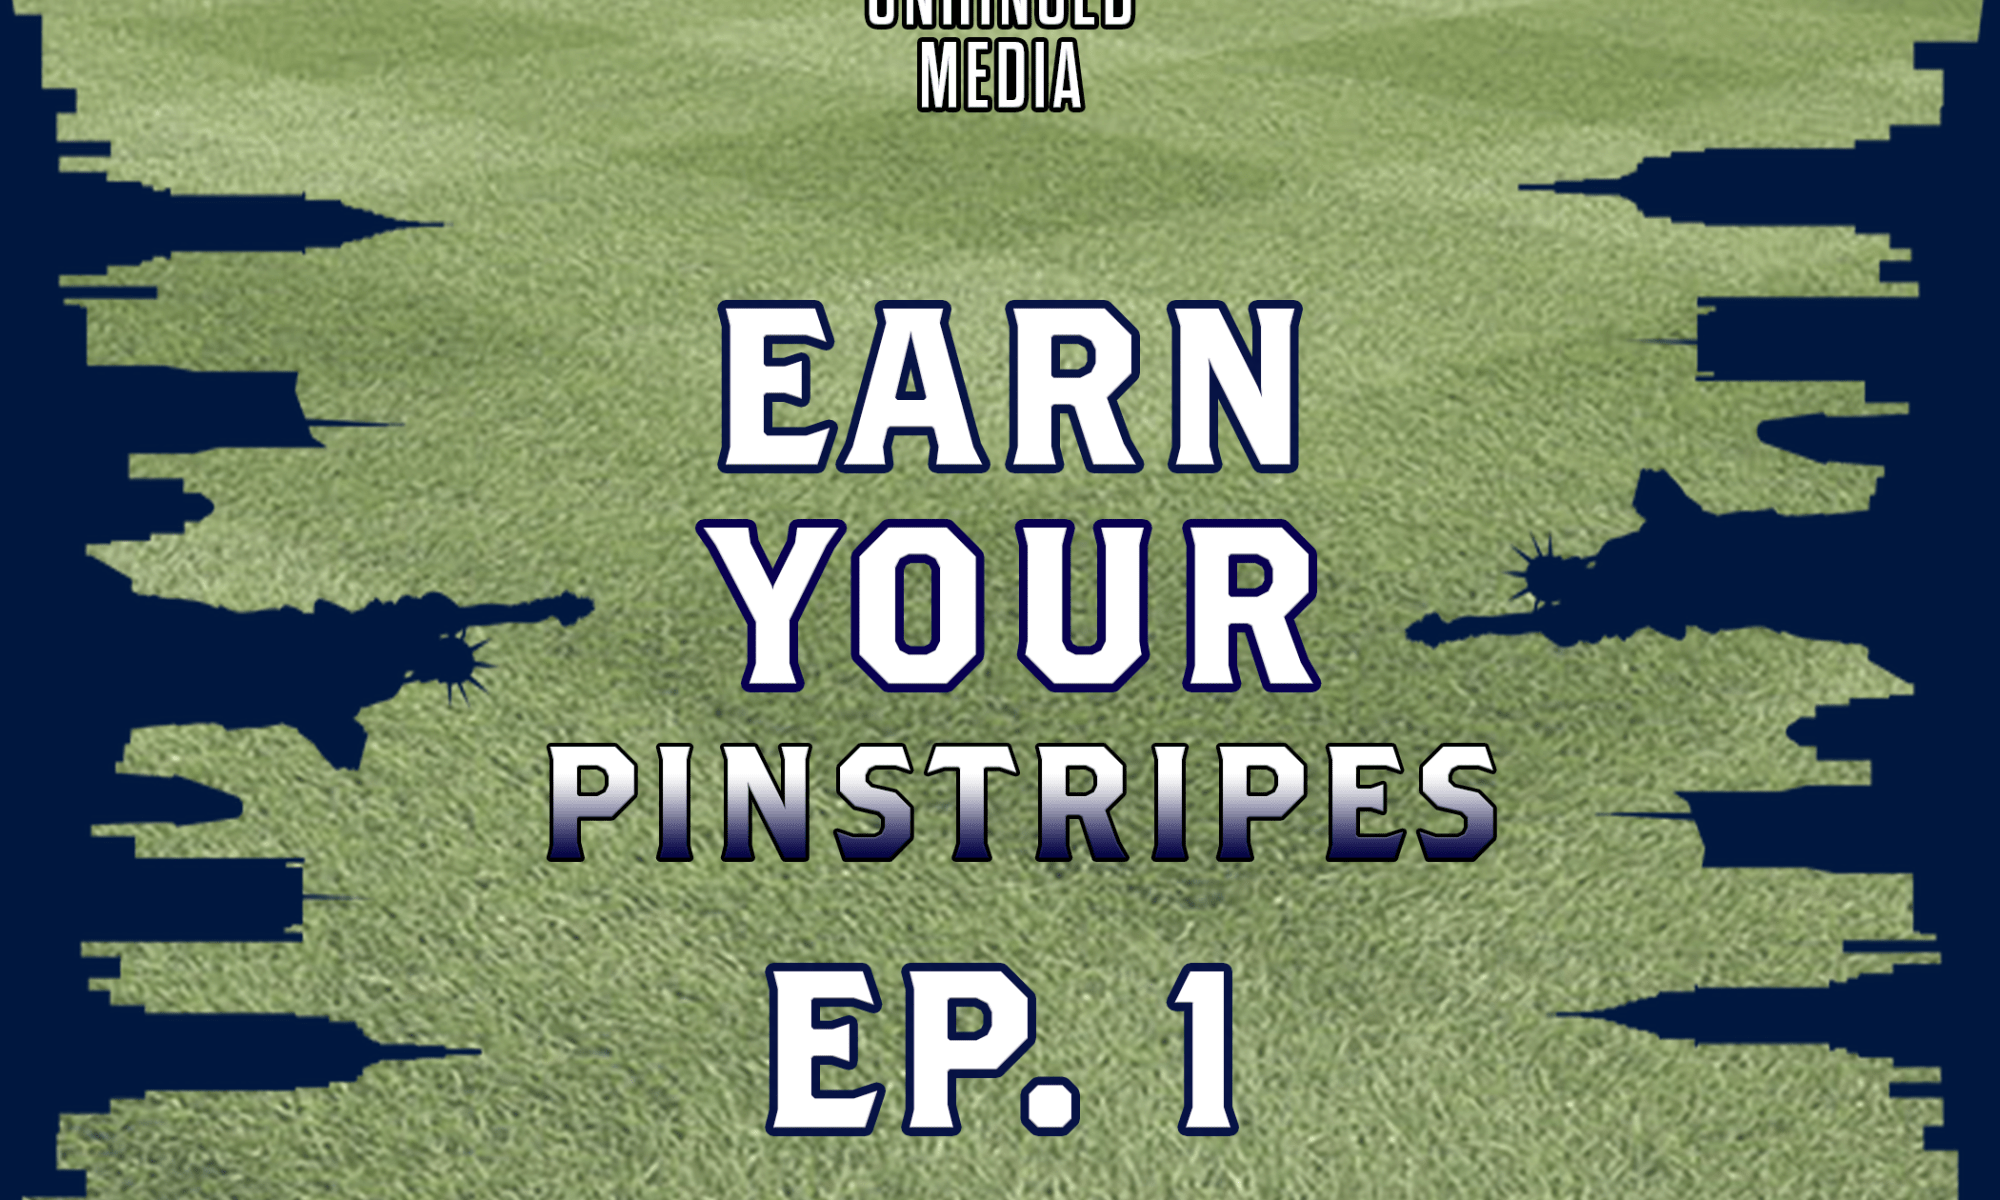 Earn Your Pinstripes Podcast